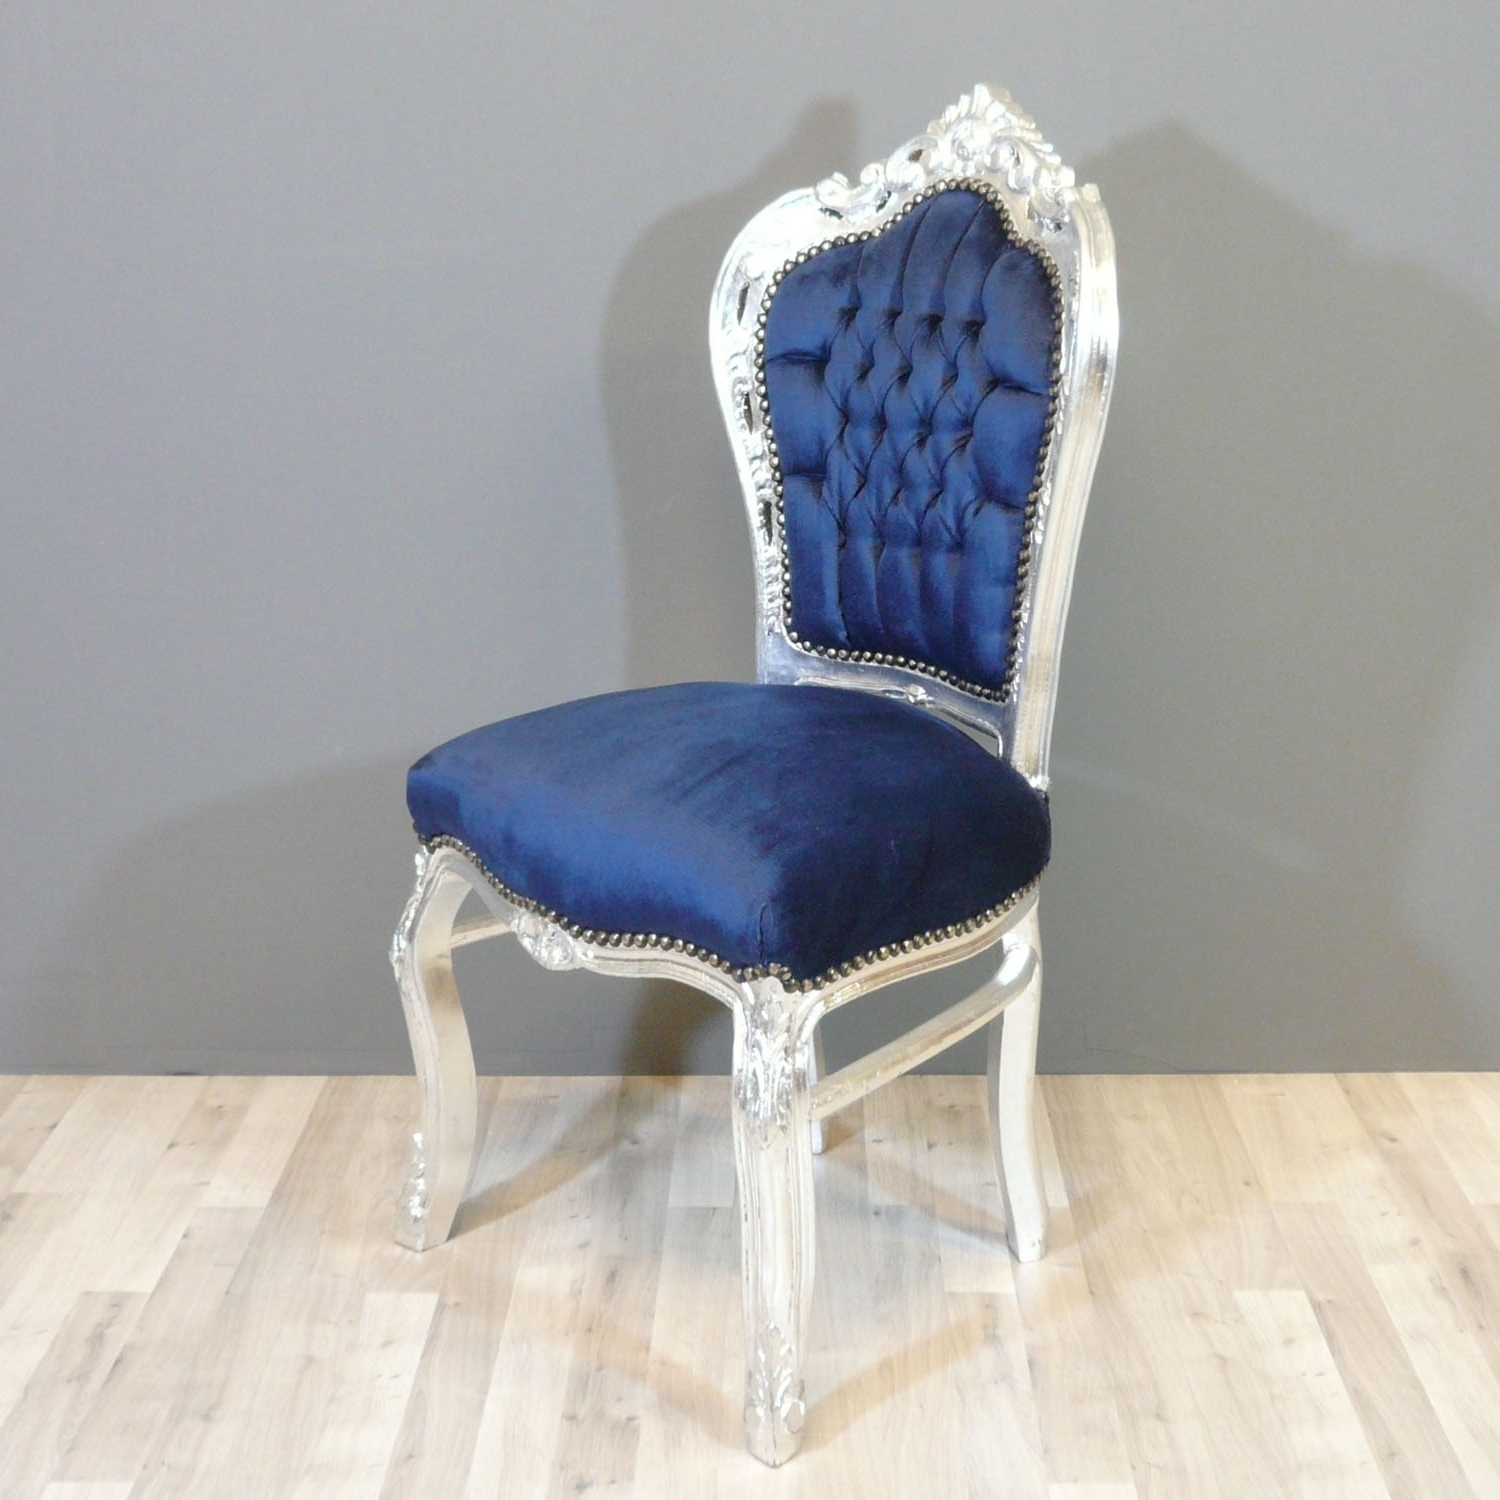 Blue Chaises With Regard To Famous Baroque Blue Chair – Chairs Baroque (View 5 of 15)